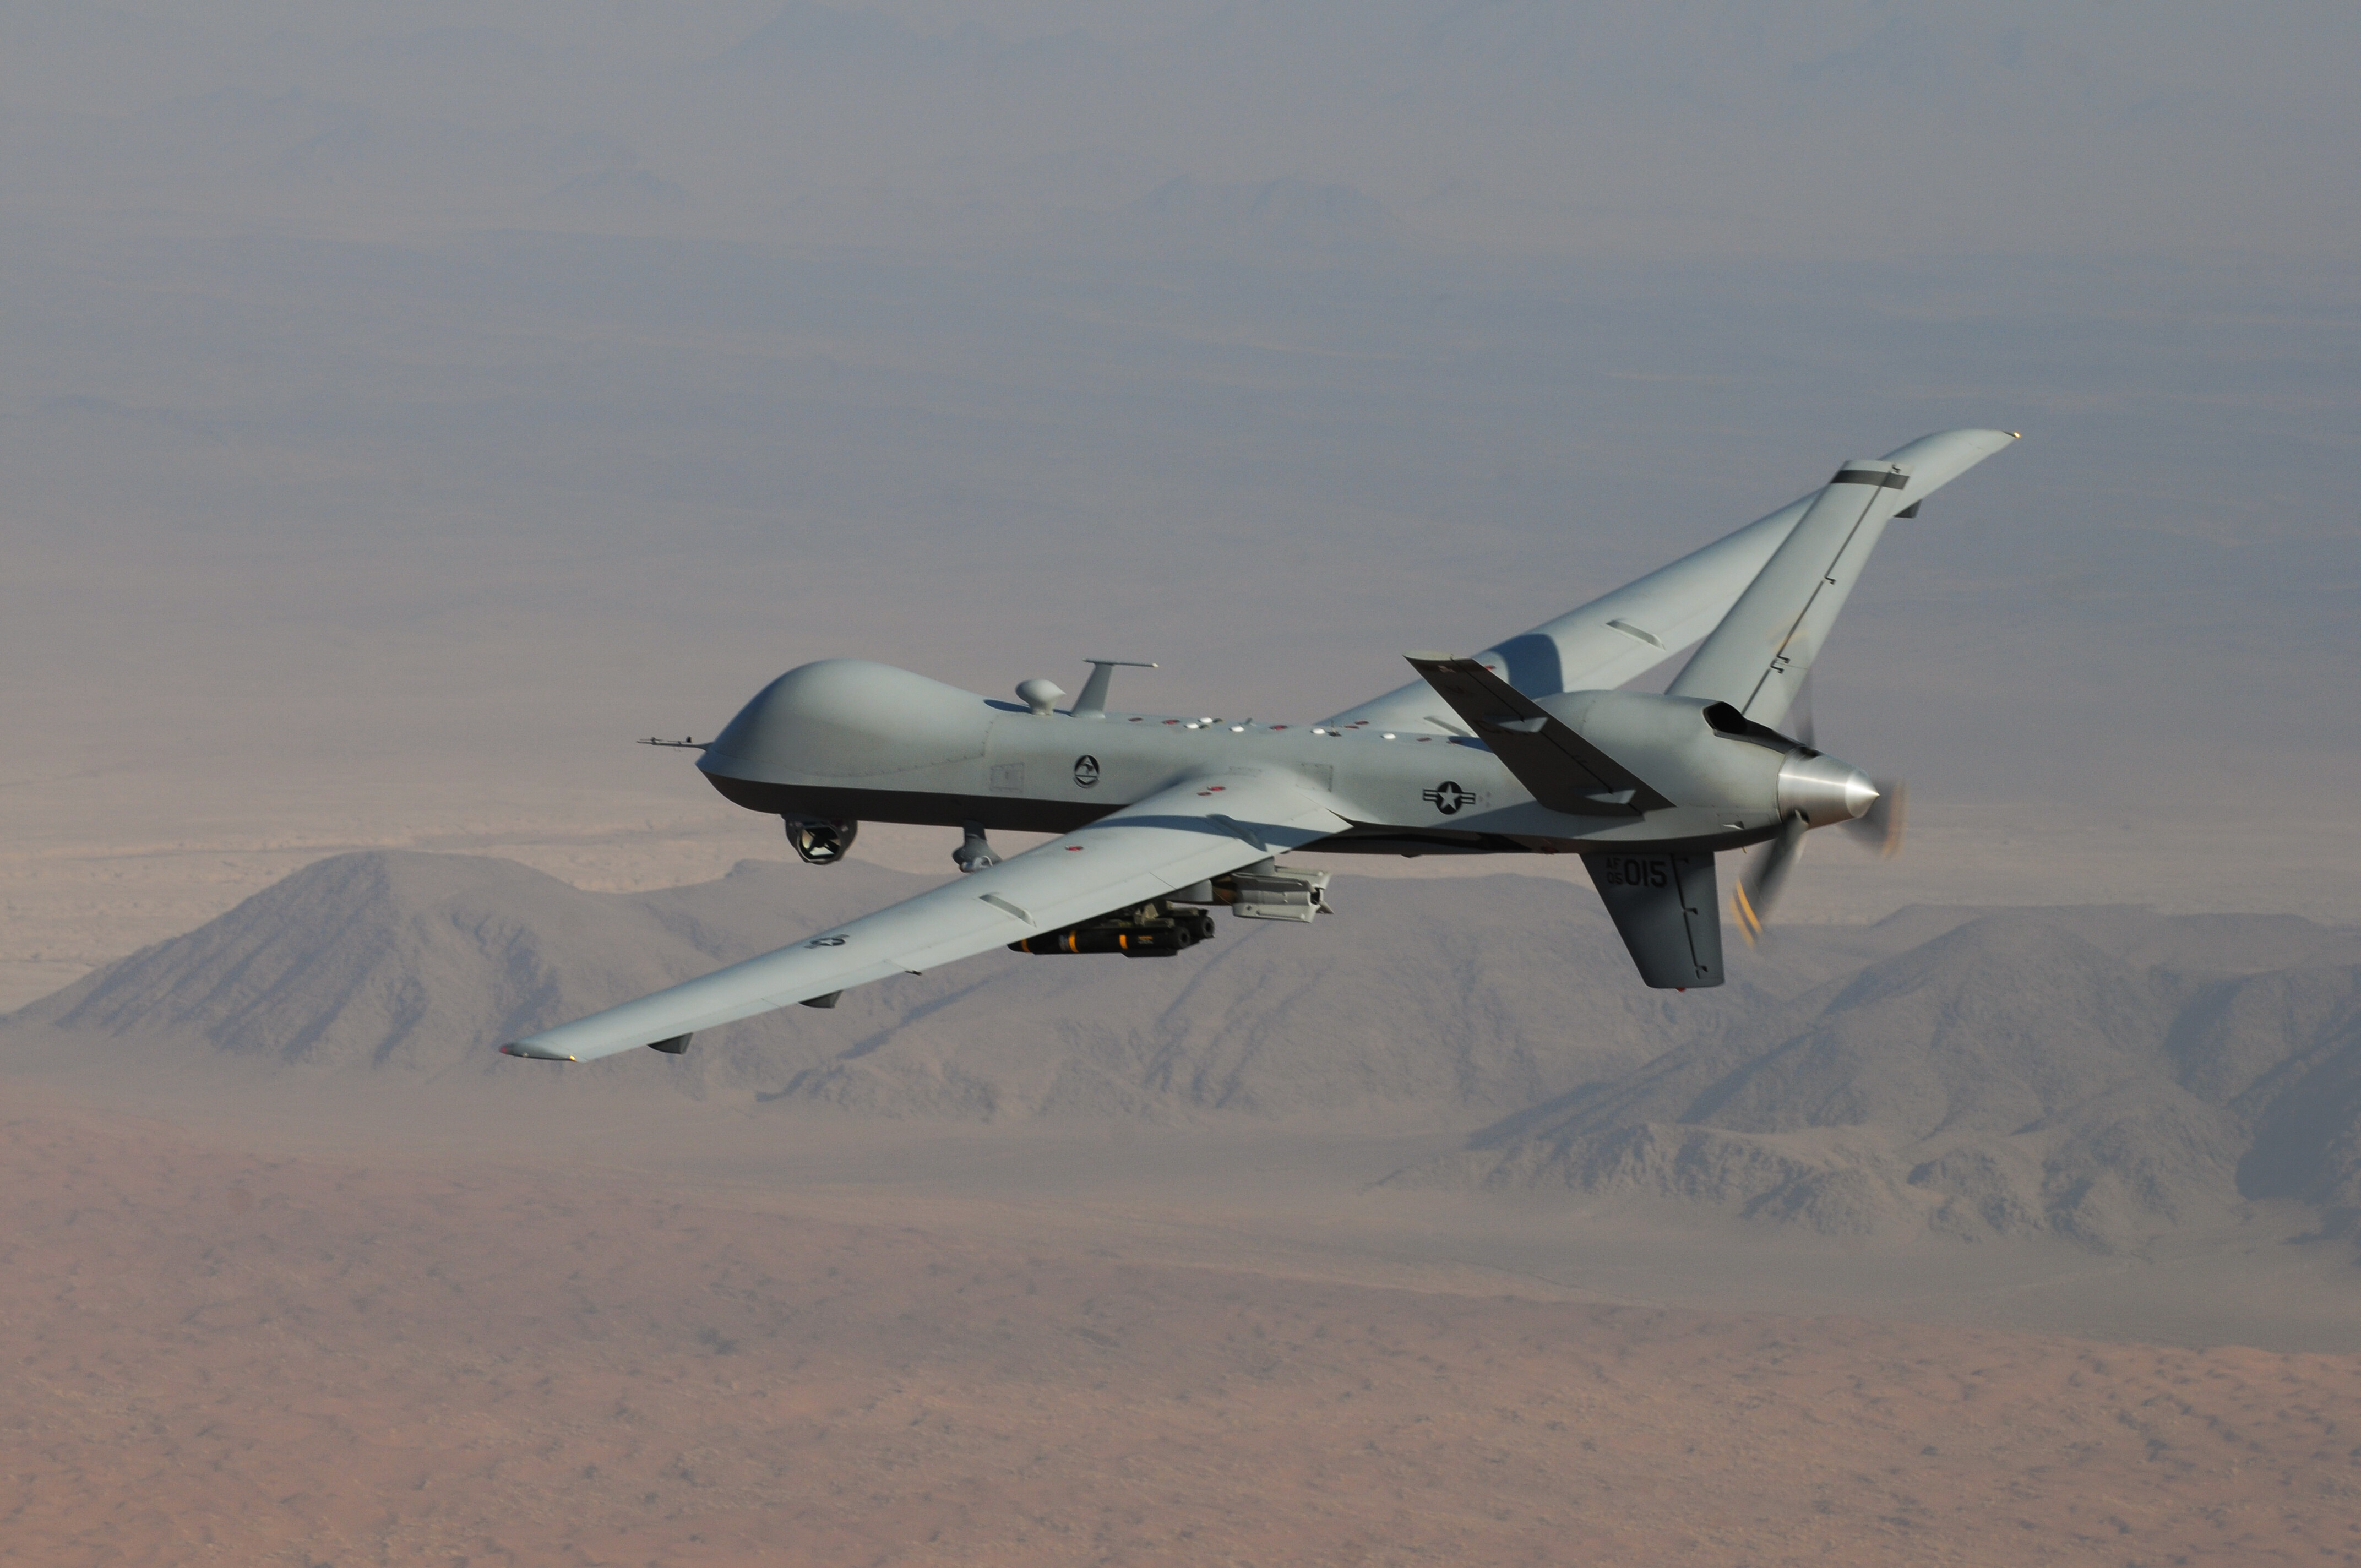 Biden administration still weighing CIA drone strike policy amid Afghanistan withdrawal